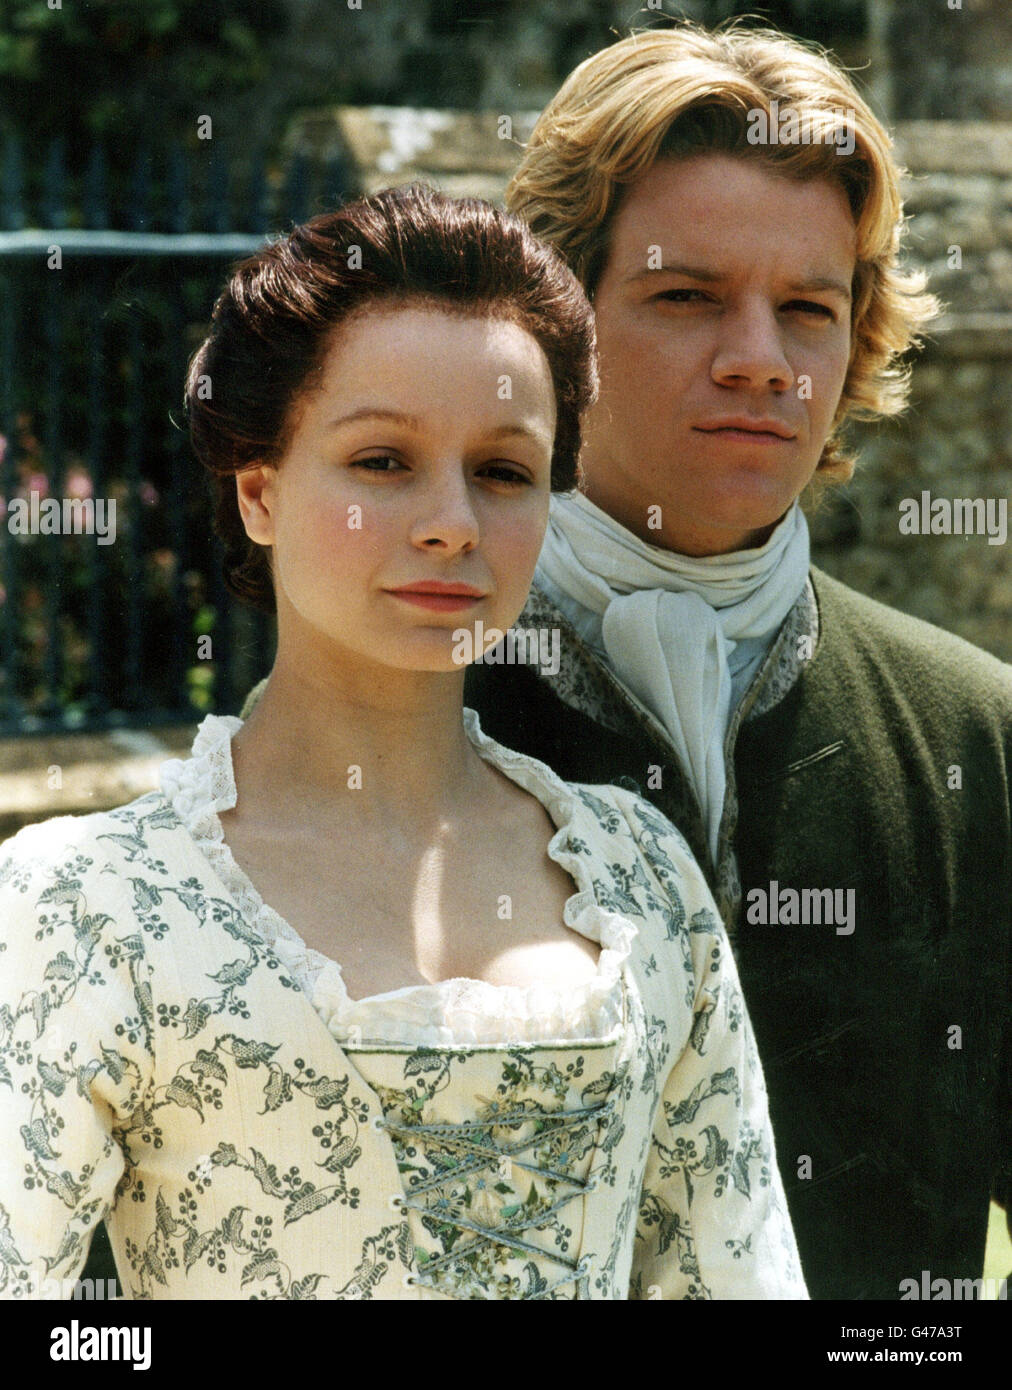 SAMANTHA MORTON (AS SOPHIE) AND MAX BEESLEY (TOM JONES) DURING THE FILMING FO THE BBC'S NEW SERIES NEWS FIVE - Stock Image